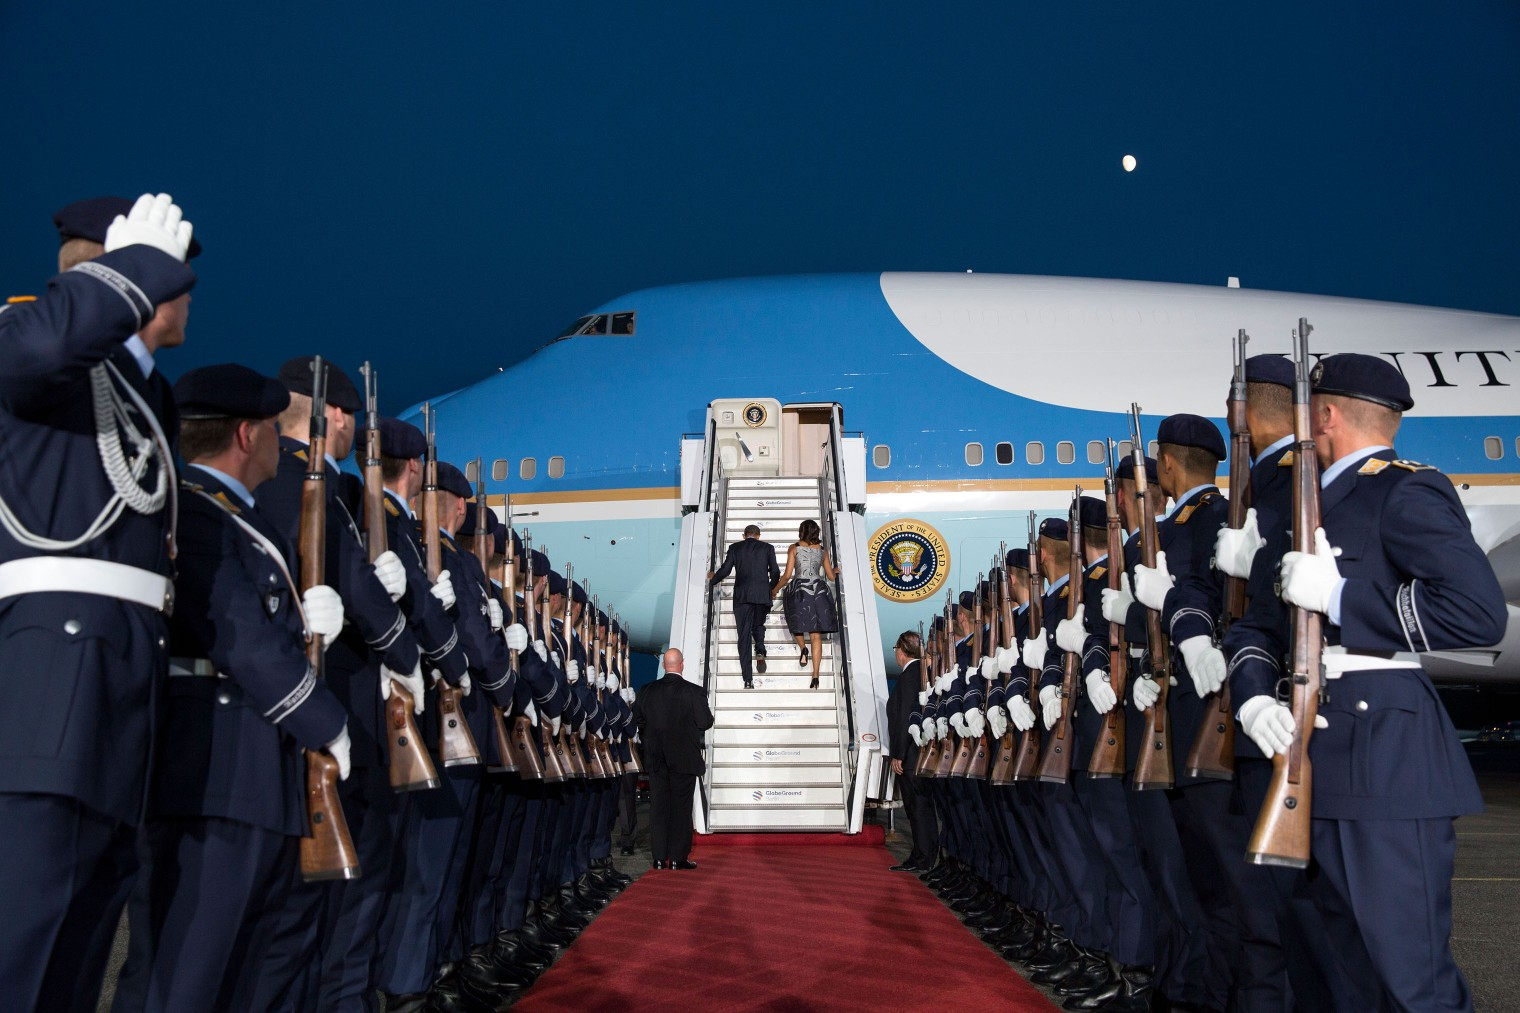 President Barack Obama and First Lady Michelle Obama board Air Force One as they depart Berlin on June 19, 2013..